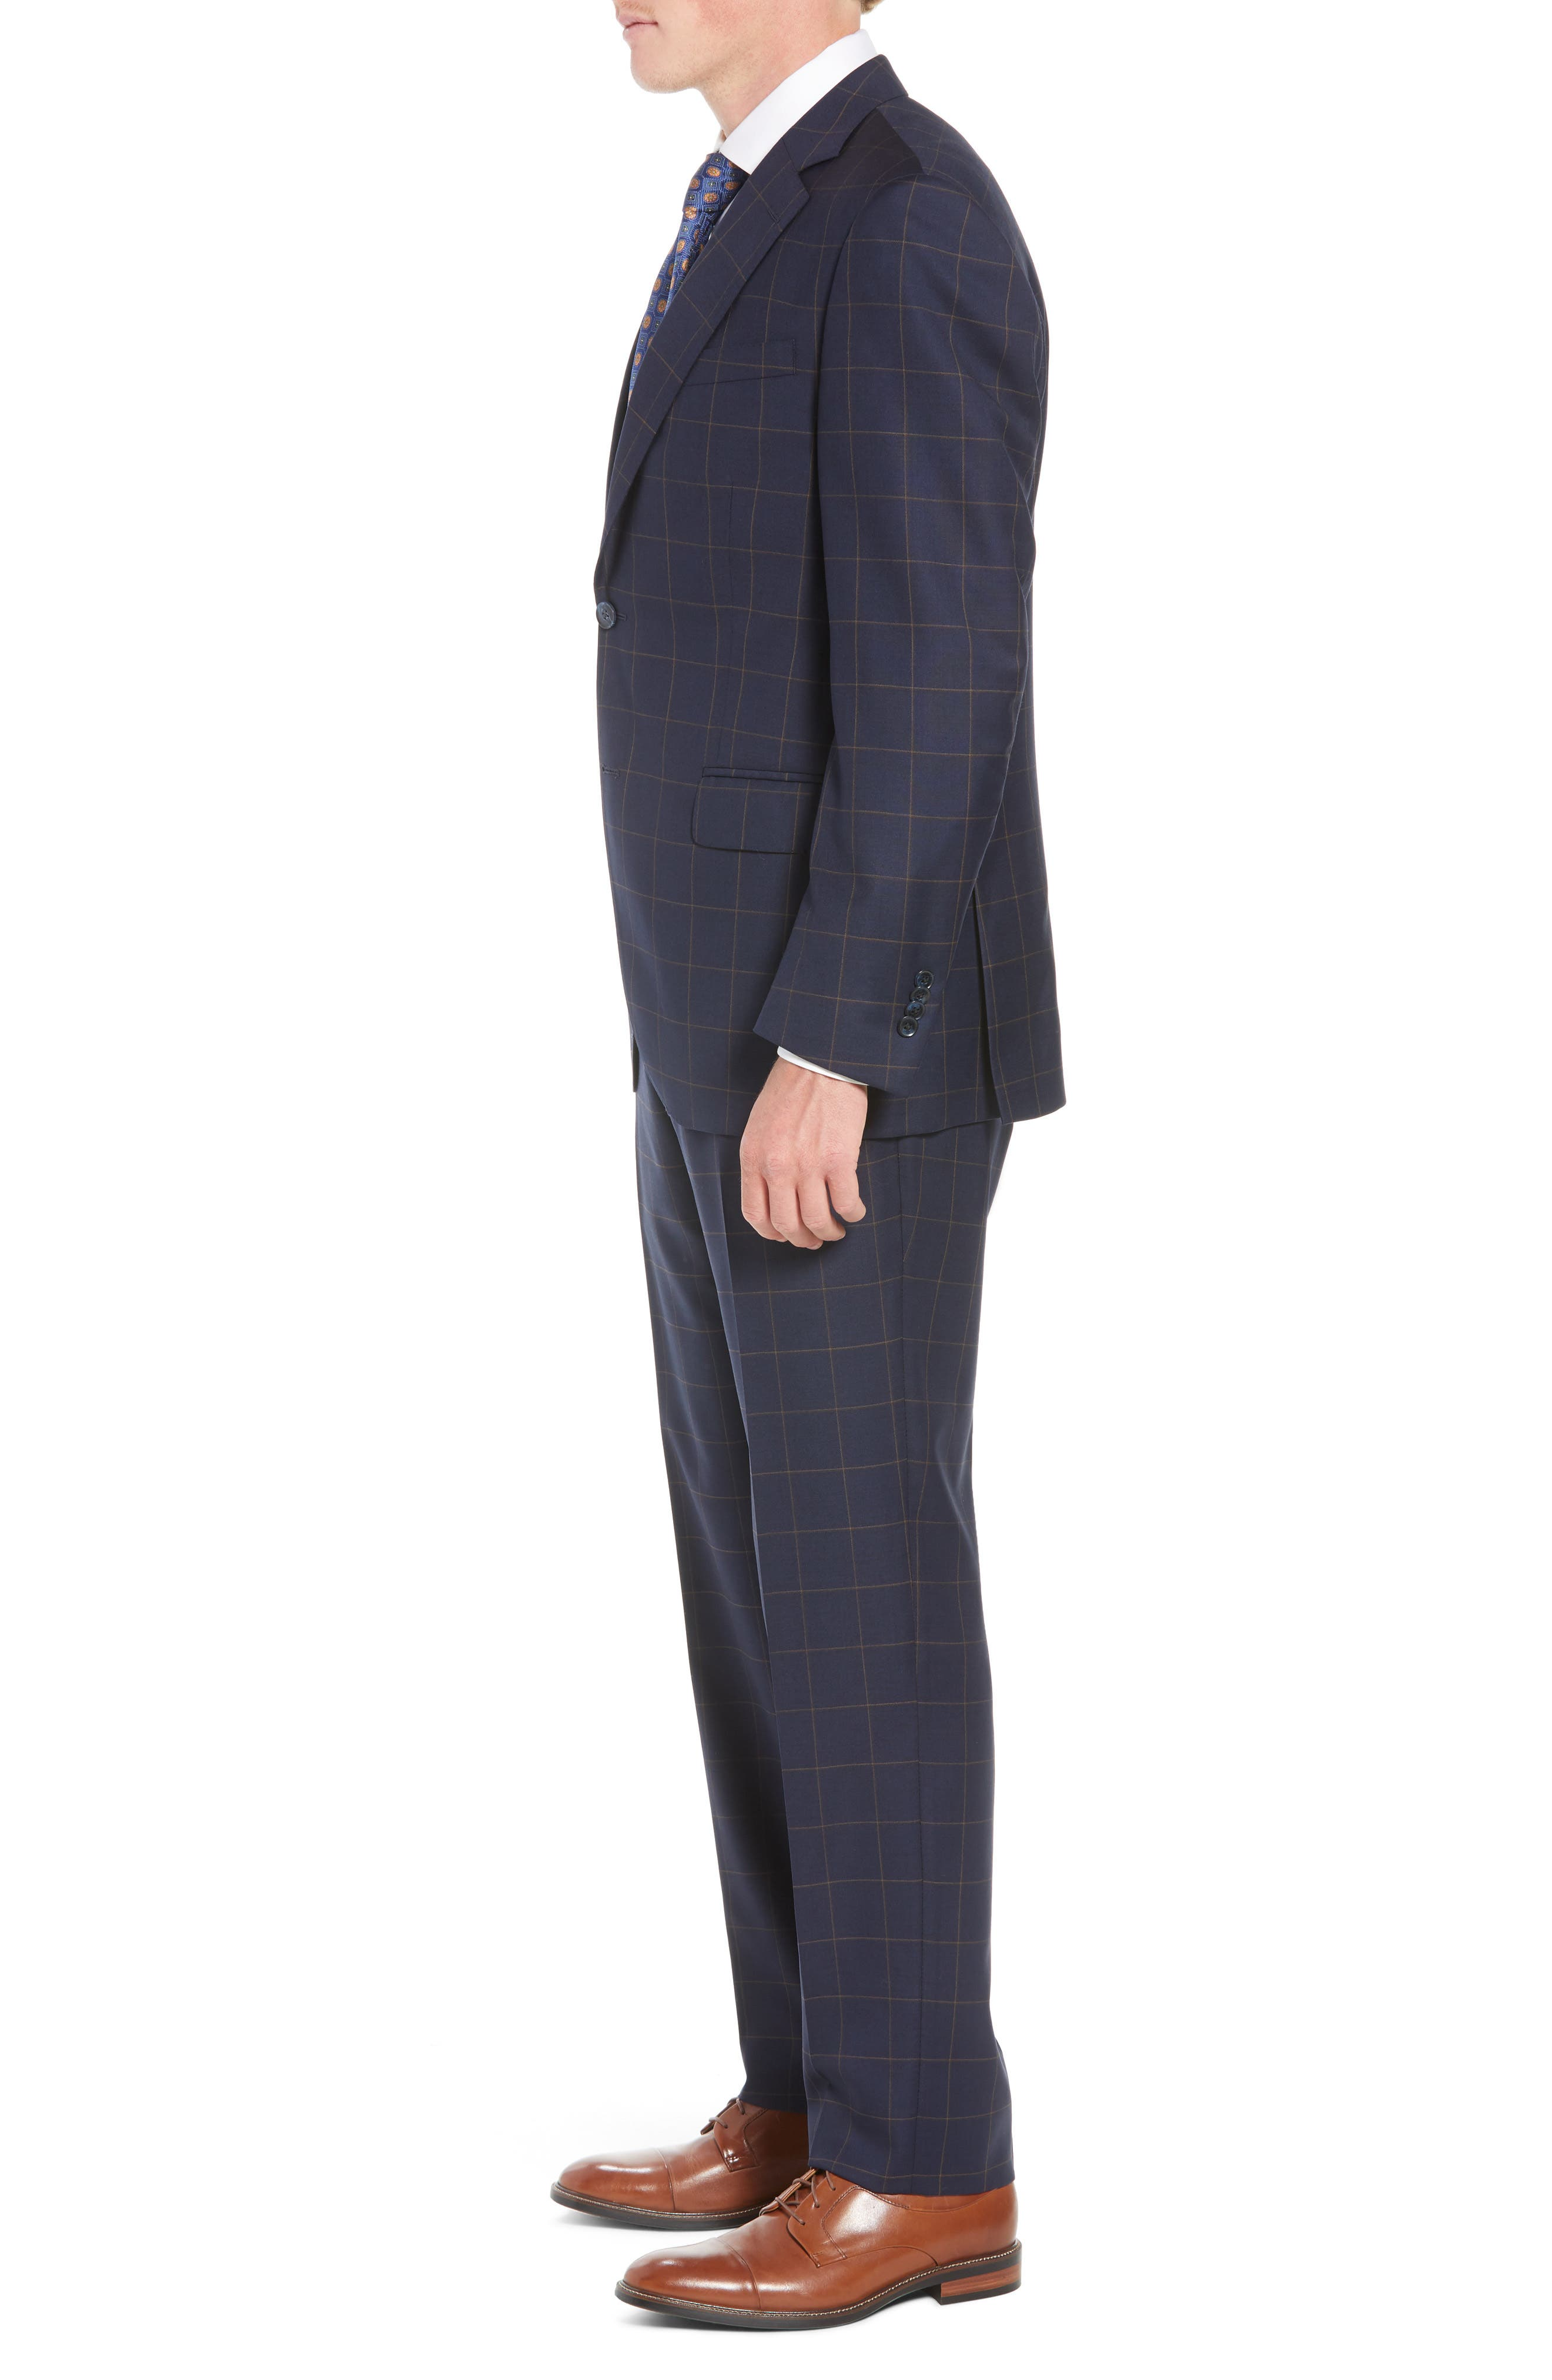 PETER MILLAR,                             Flynn Classic Fit Windowpane Wool Suit,                             Alternate thumbnail 3, color,                             NAVY